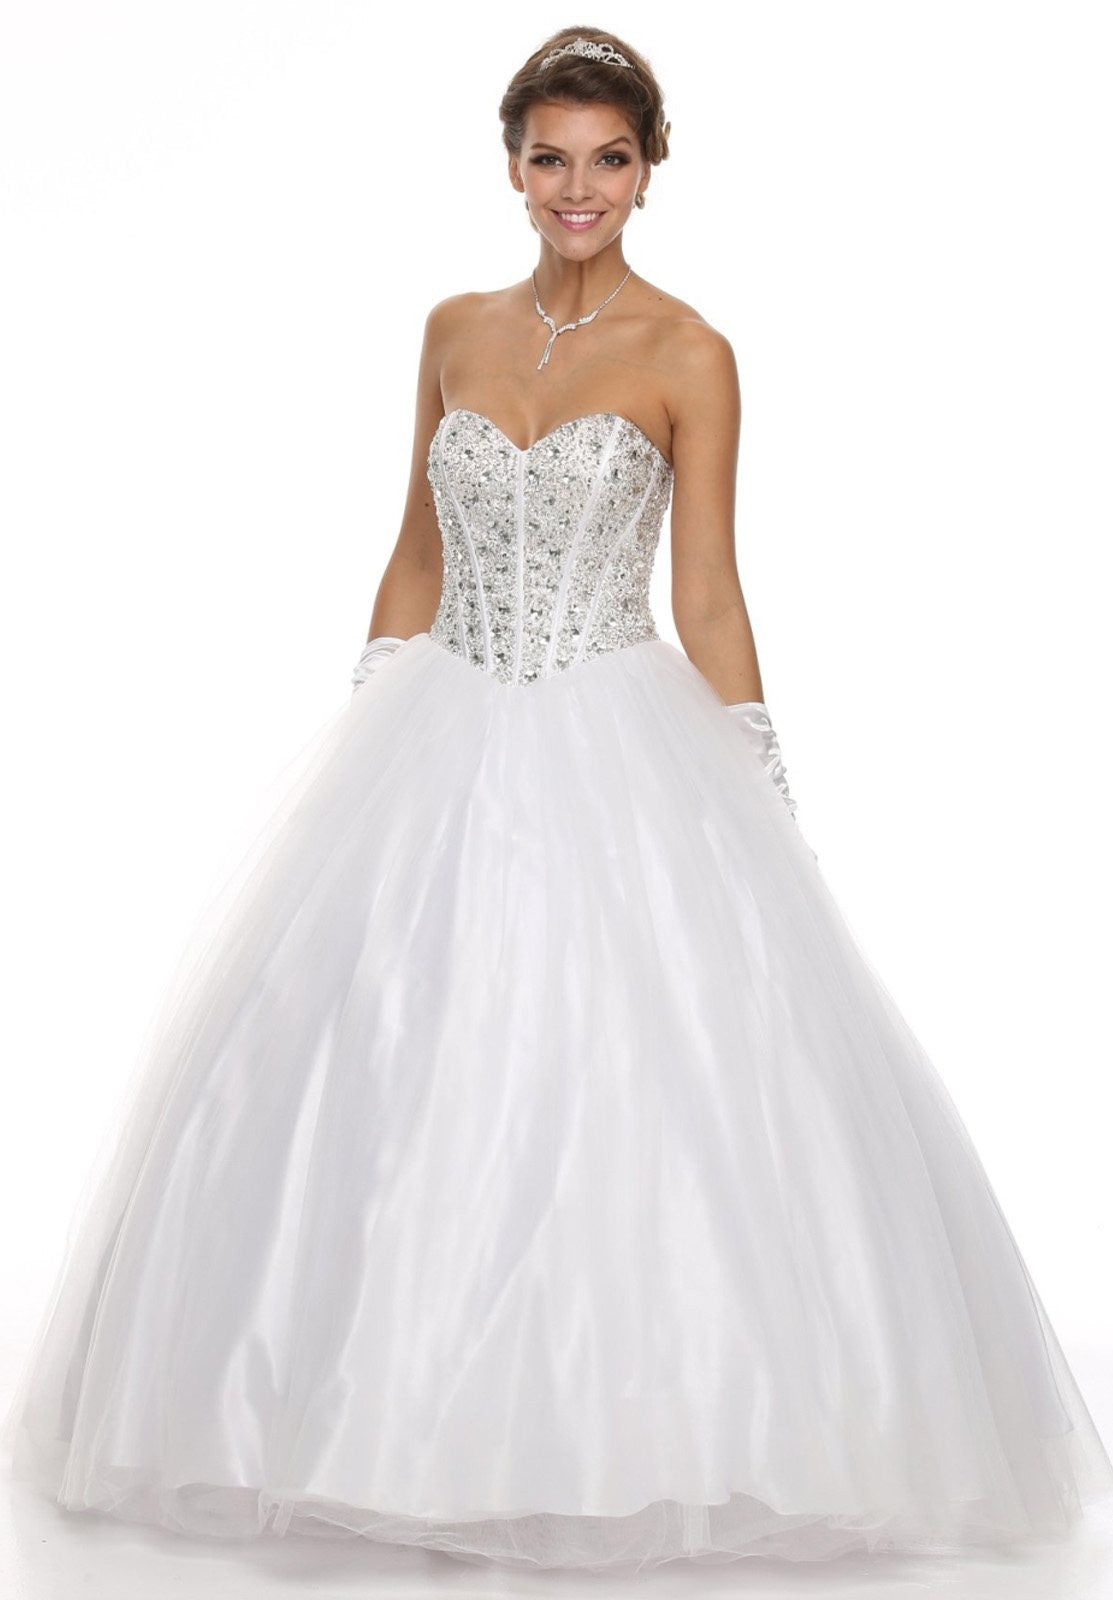 corset bodice wedding dress. corset bodice flared a line white quinceanera gown wedding dress